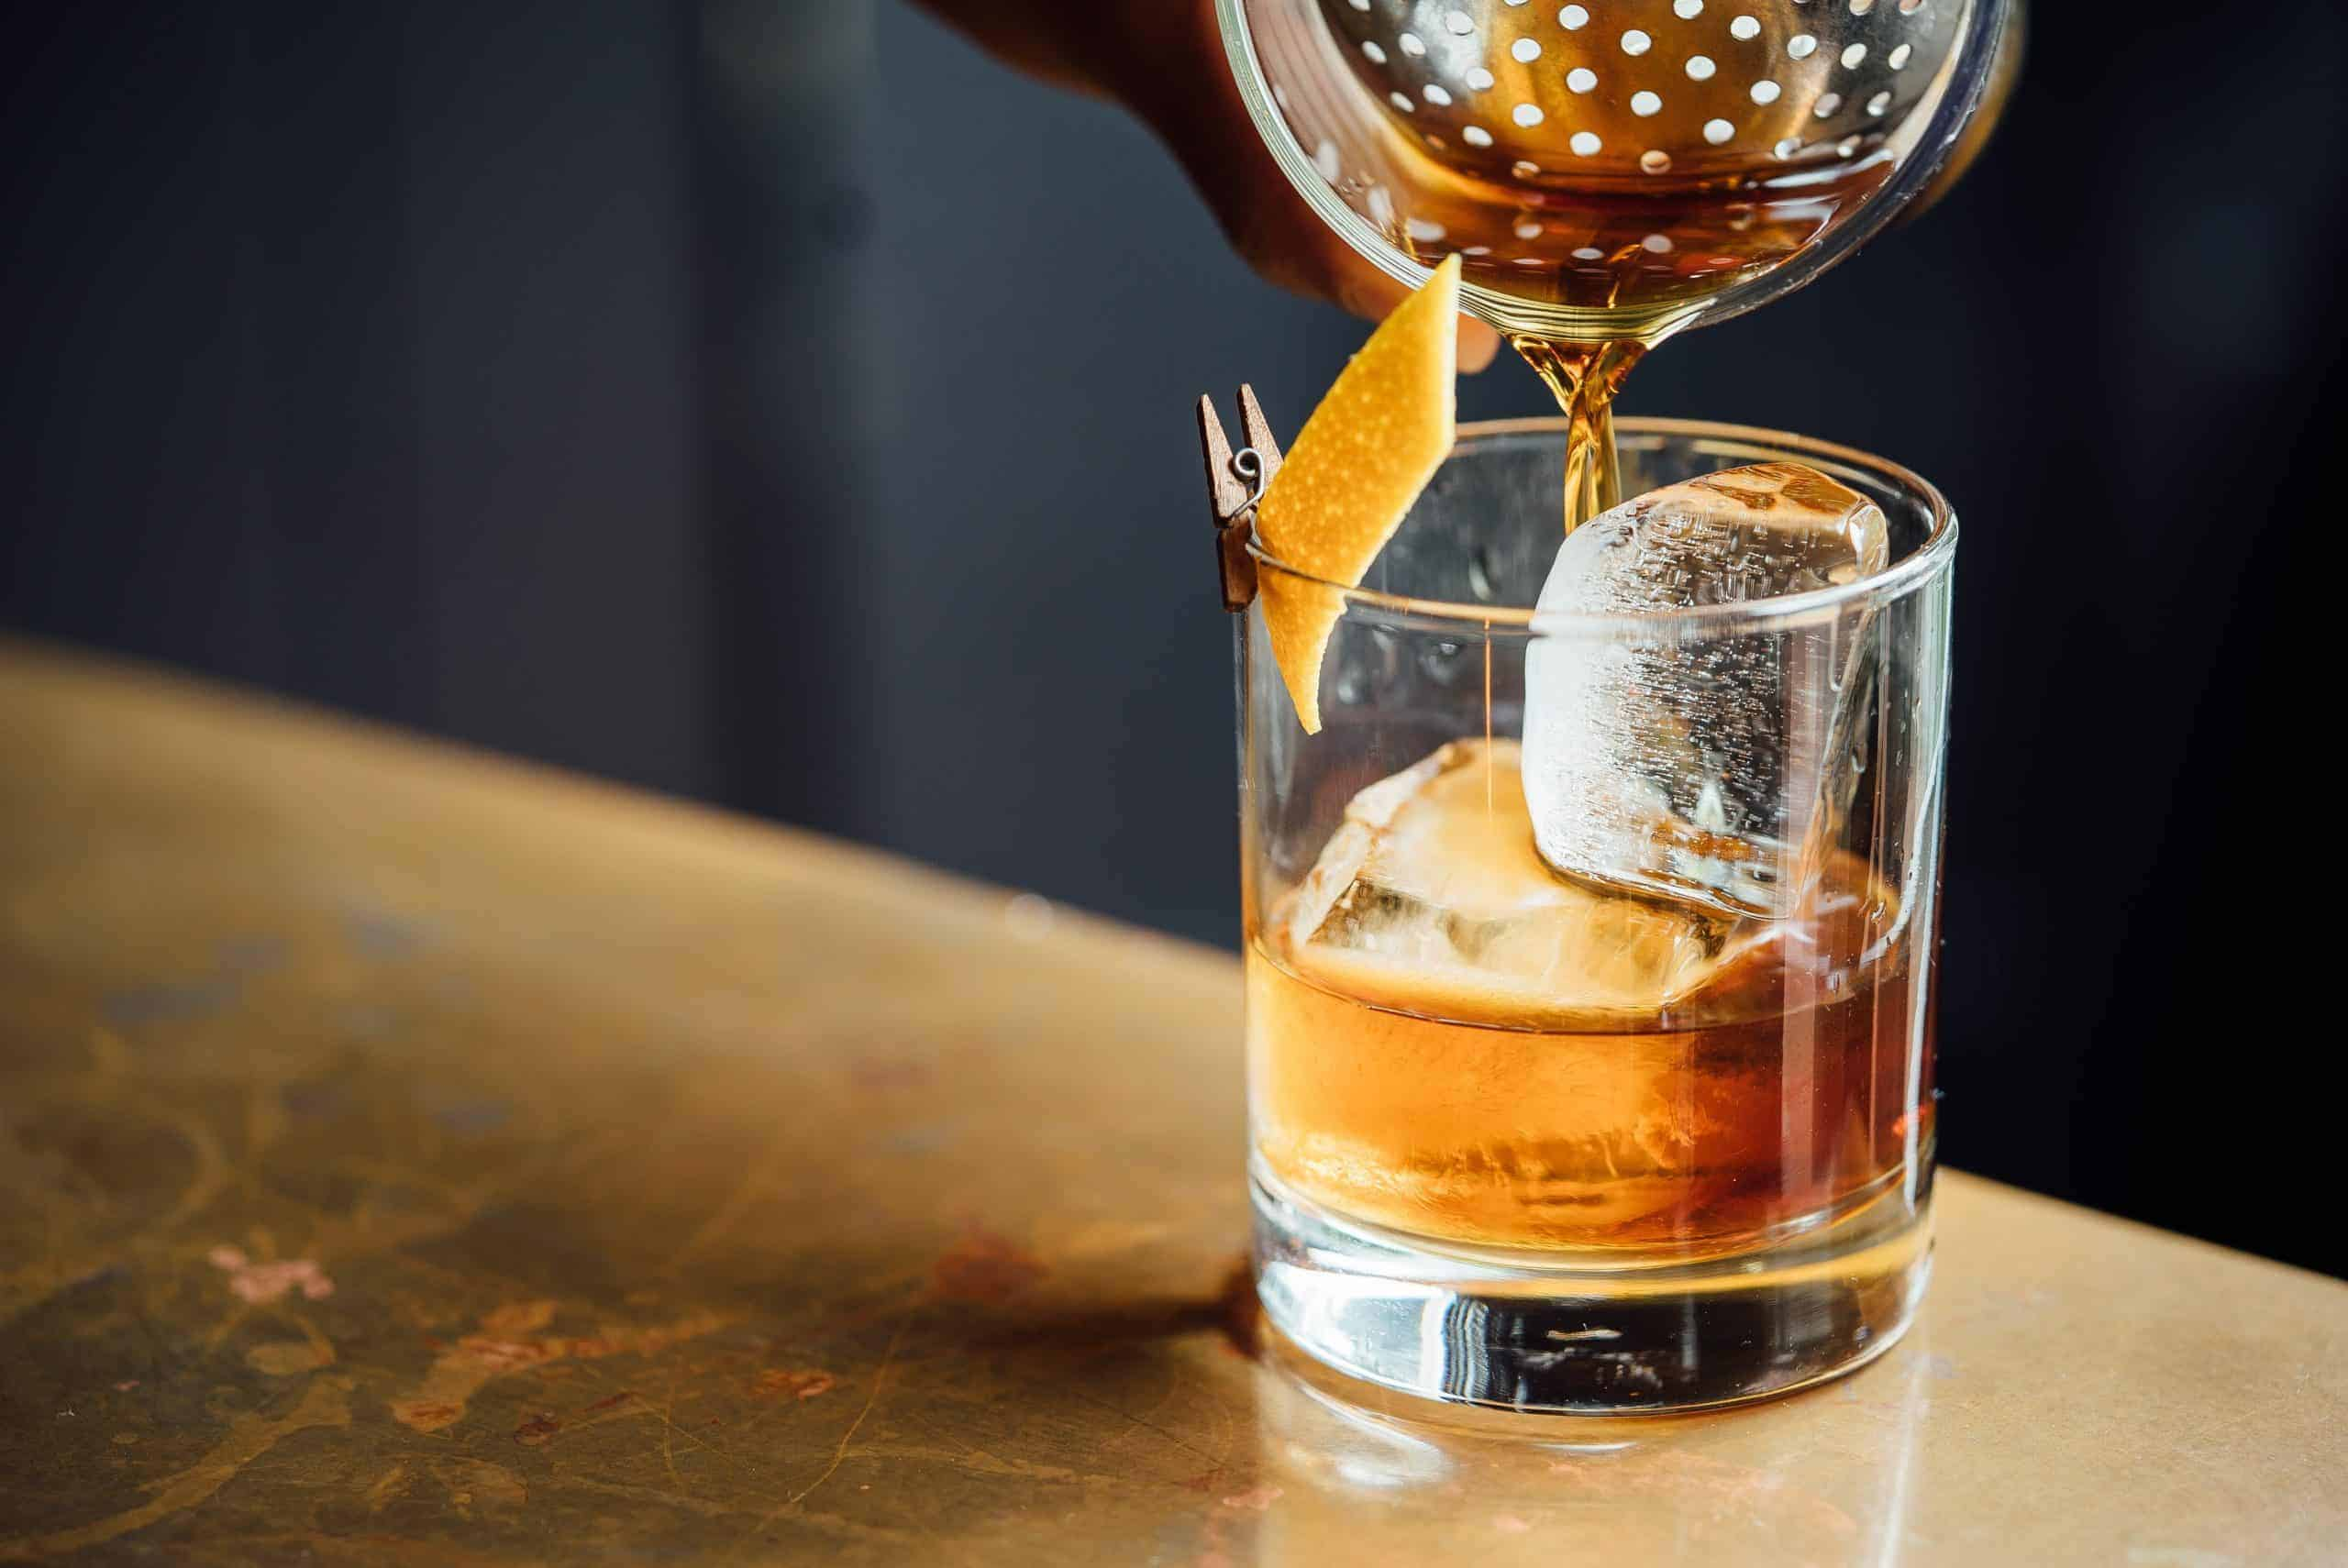 Six Whisky Cocktails To Make At Home For World Whisky Day photo